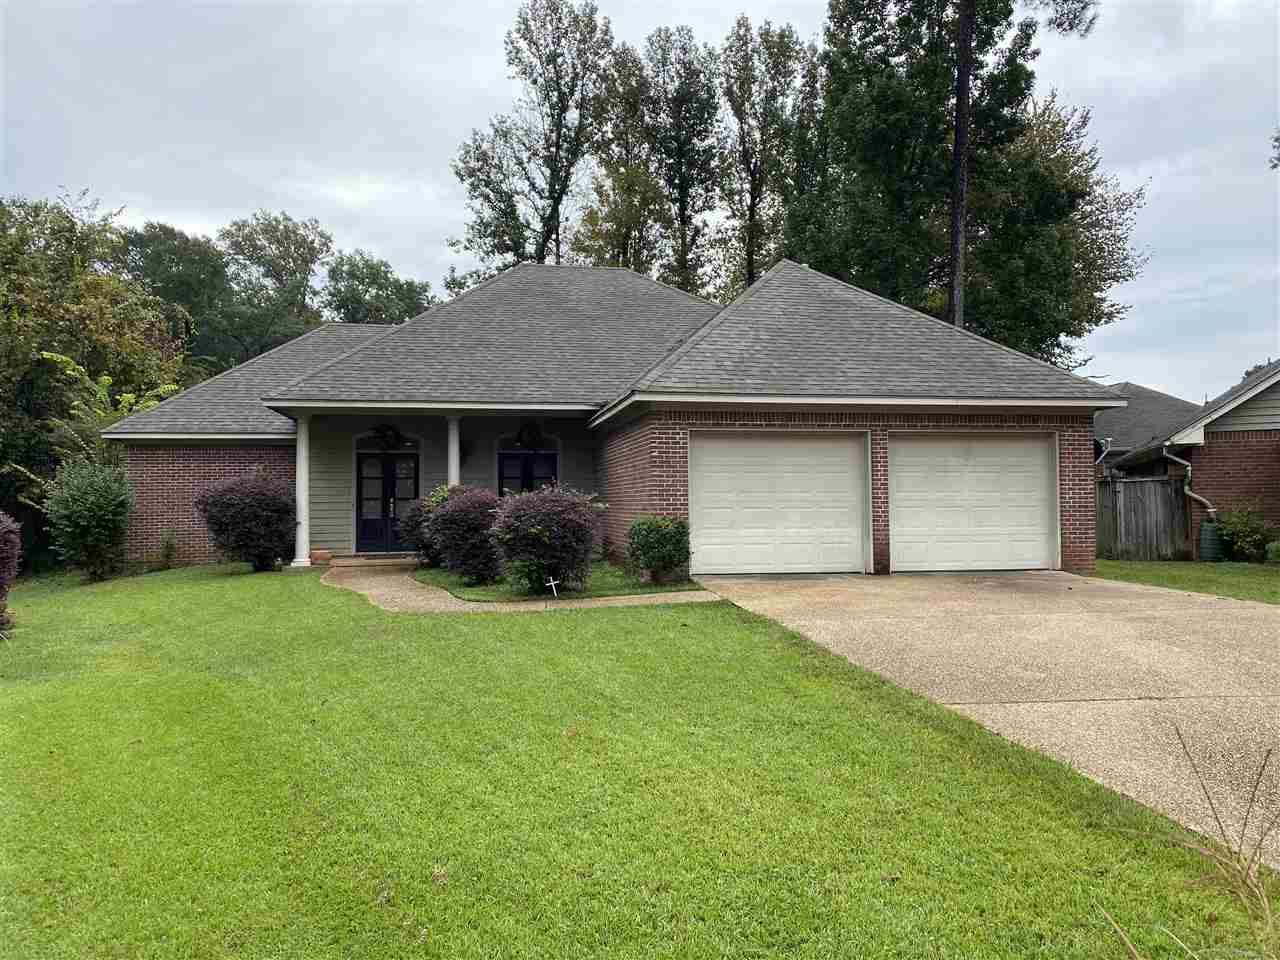 103 AVERY FOREST, Canton, MS 39046 - MLS#: 335142